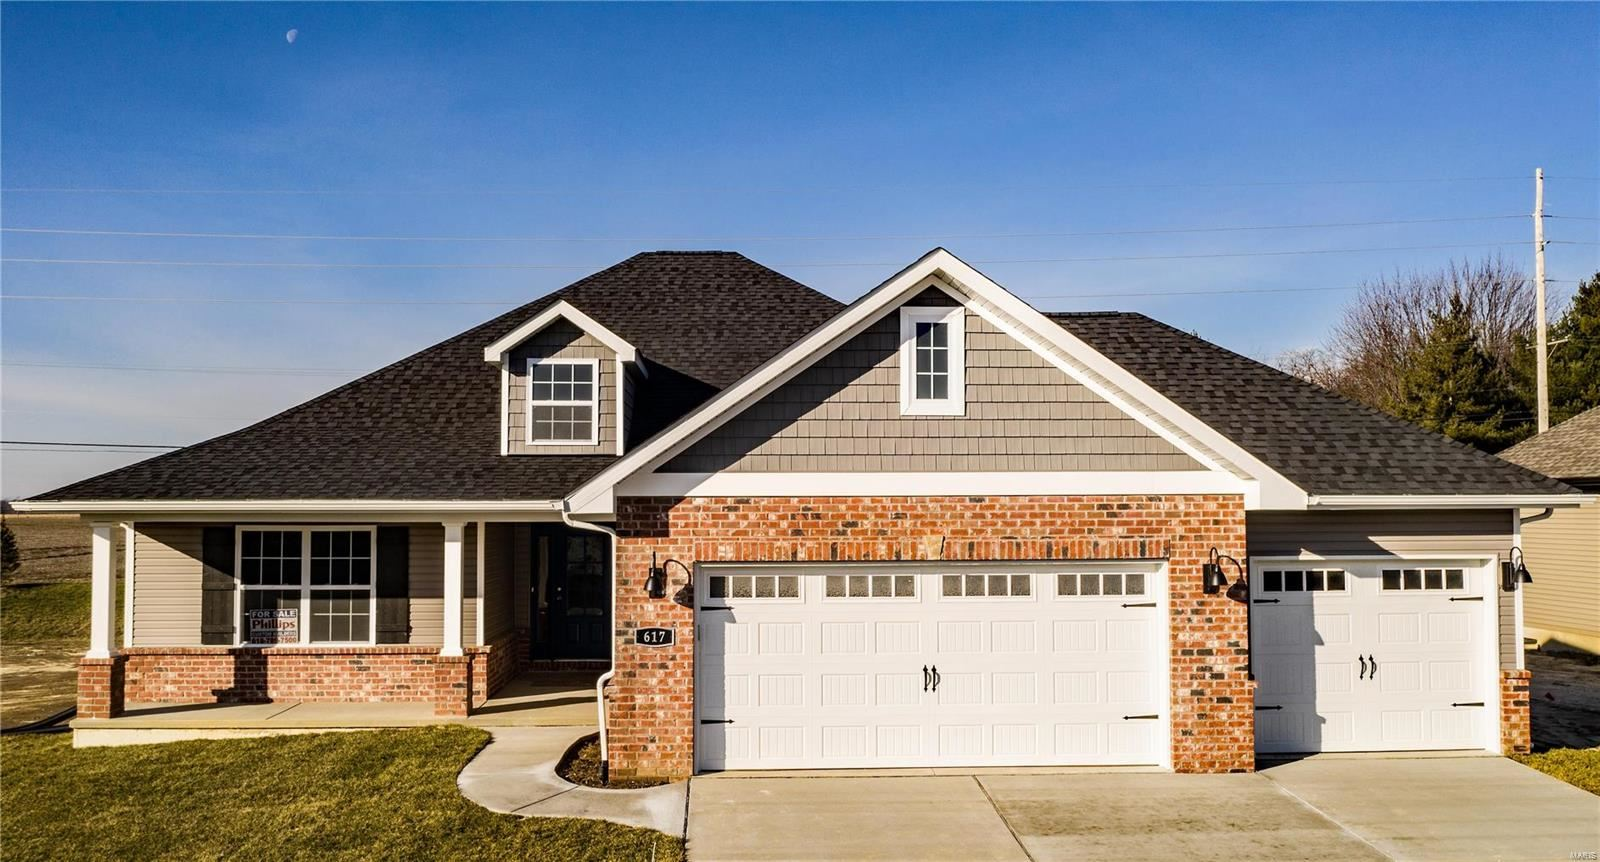 617 Fairway Wood Drive, Caseyville, IL 62269 - MLS#: 19058247